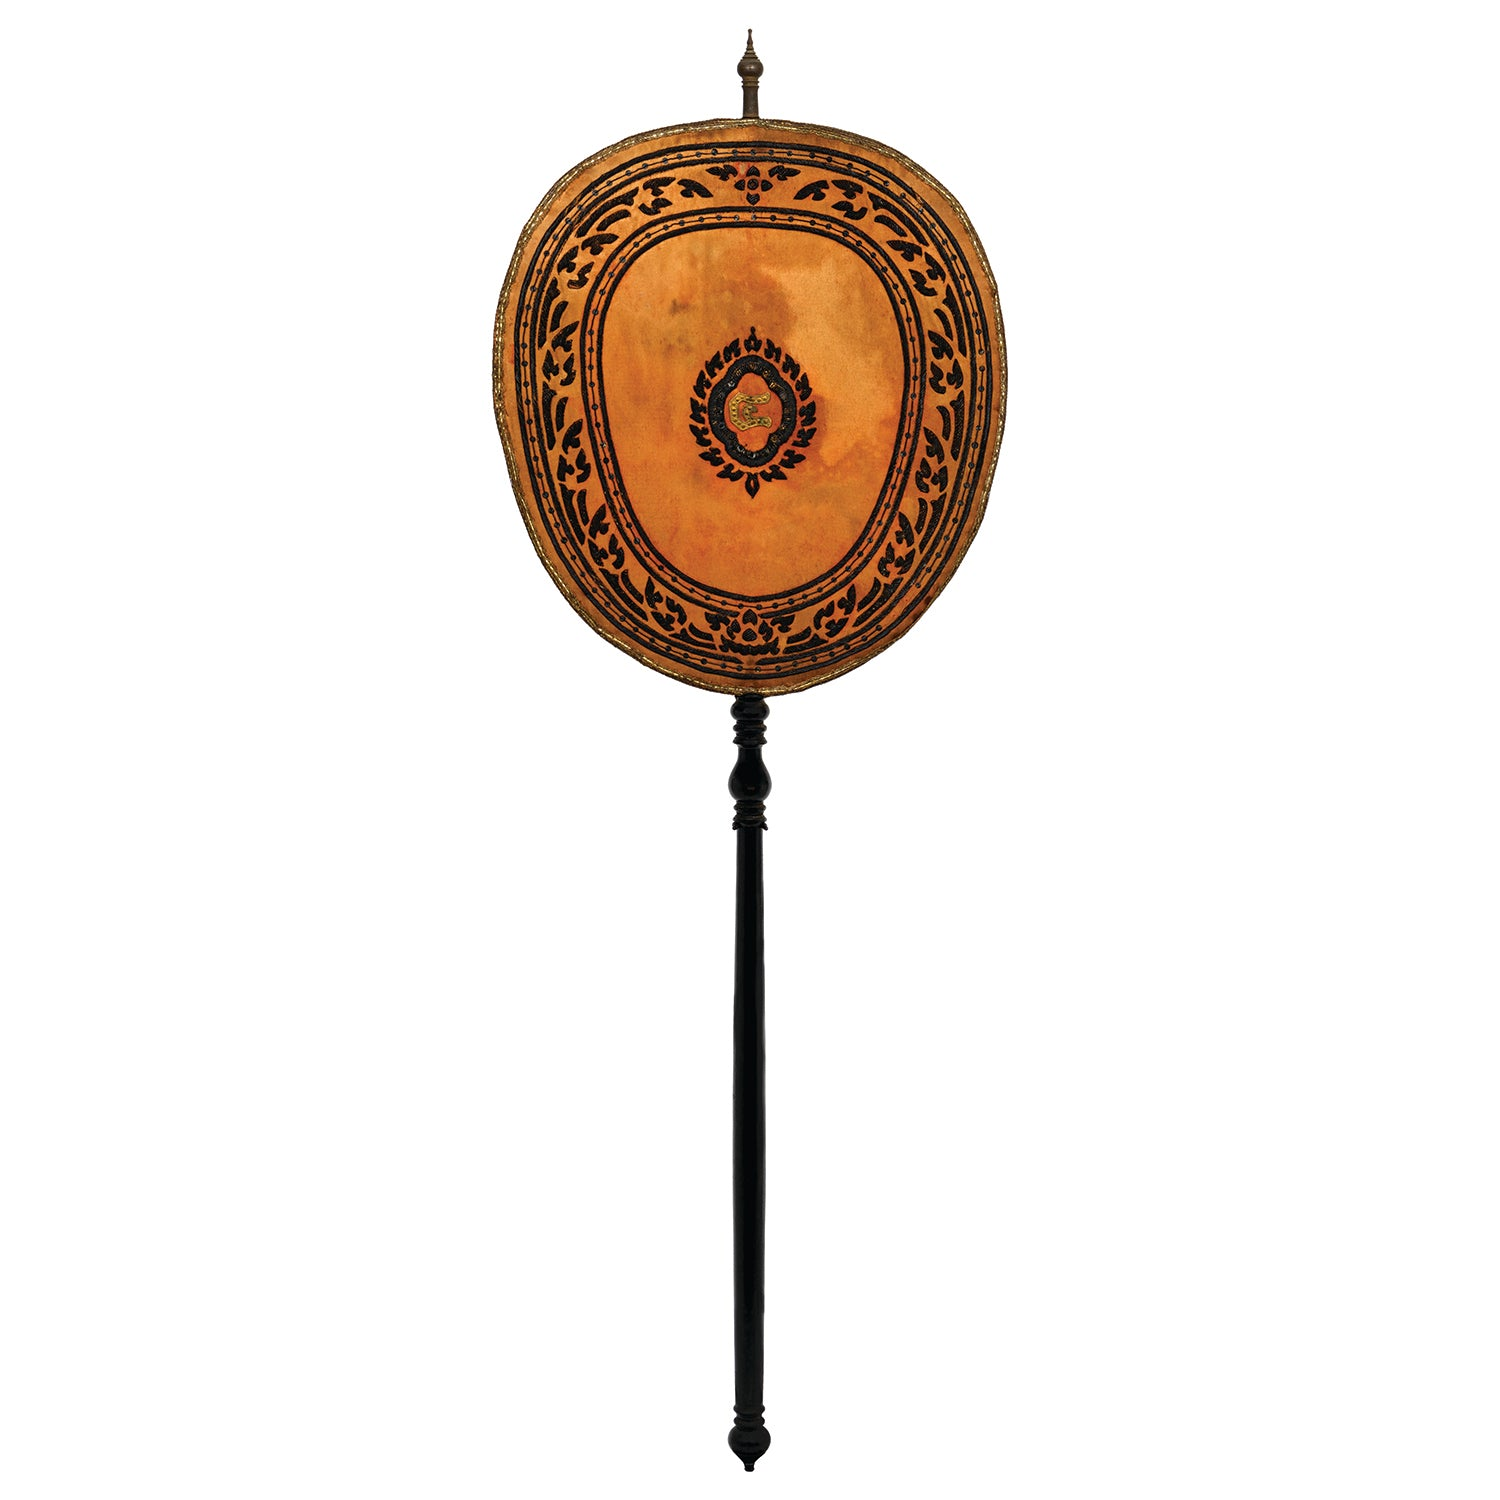 Antique Talapad Ceremonial Fan For The Buddhist Graduate